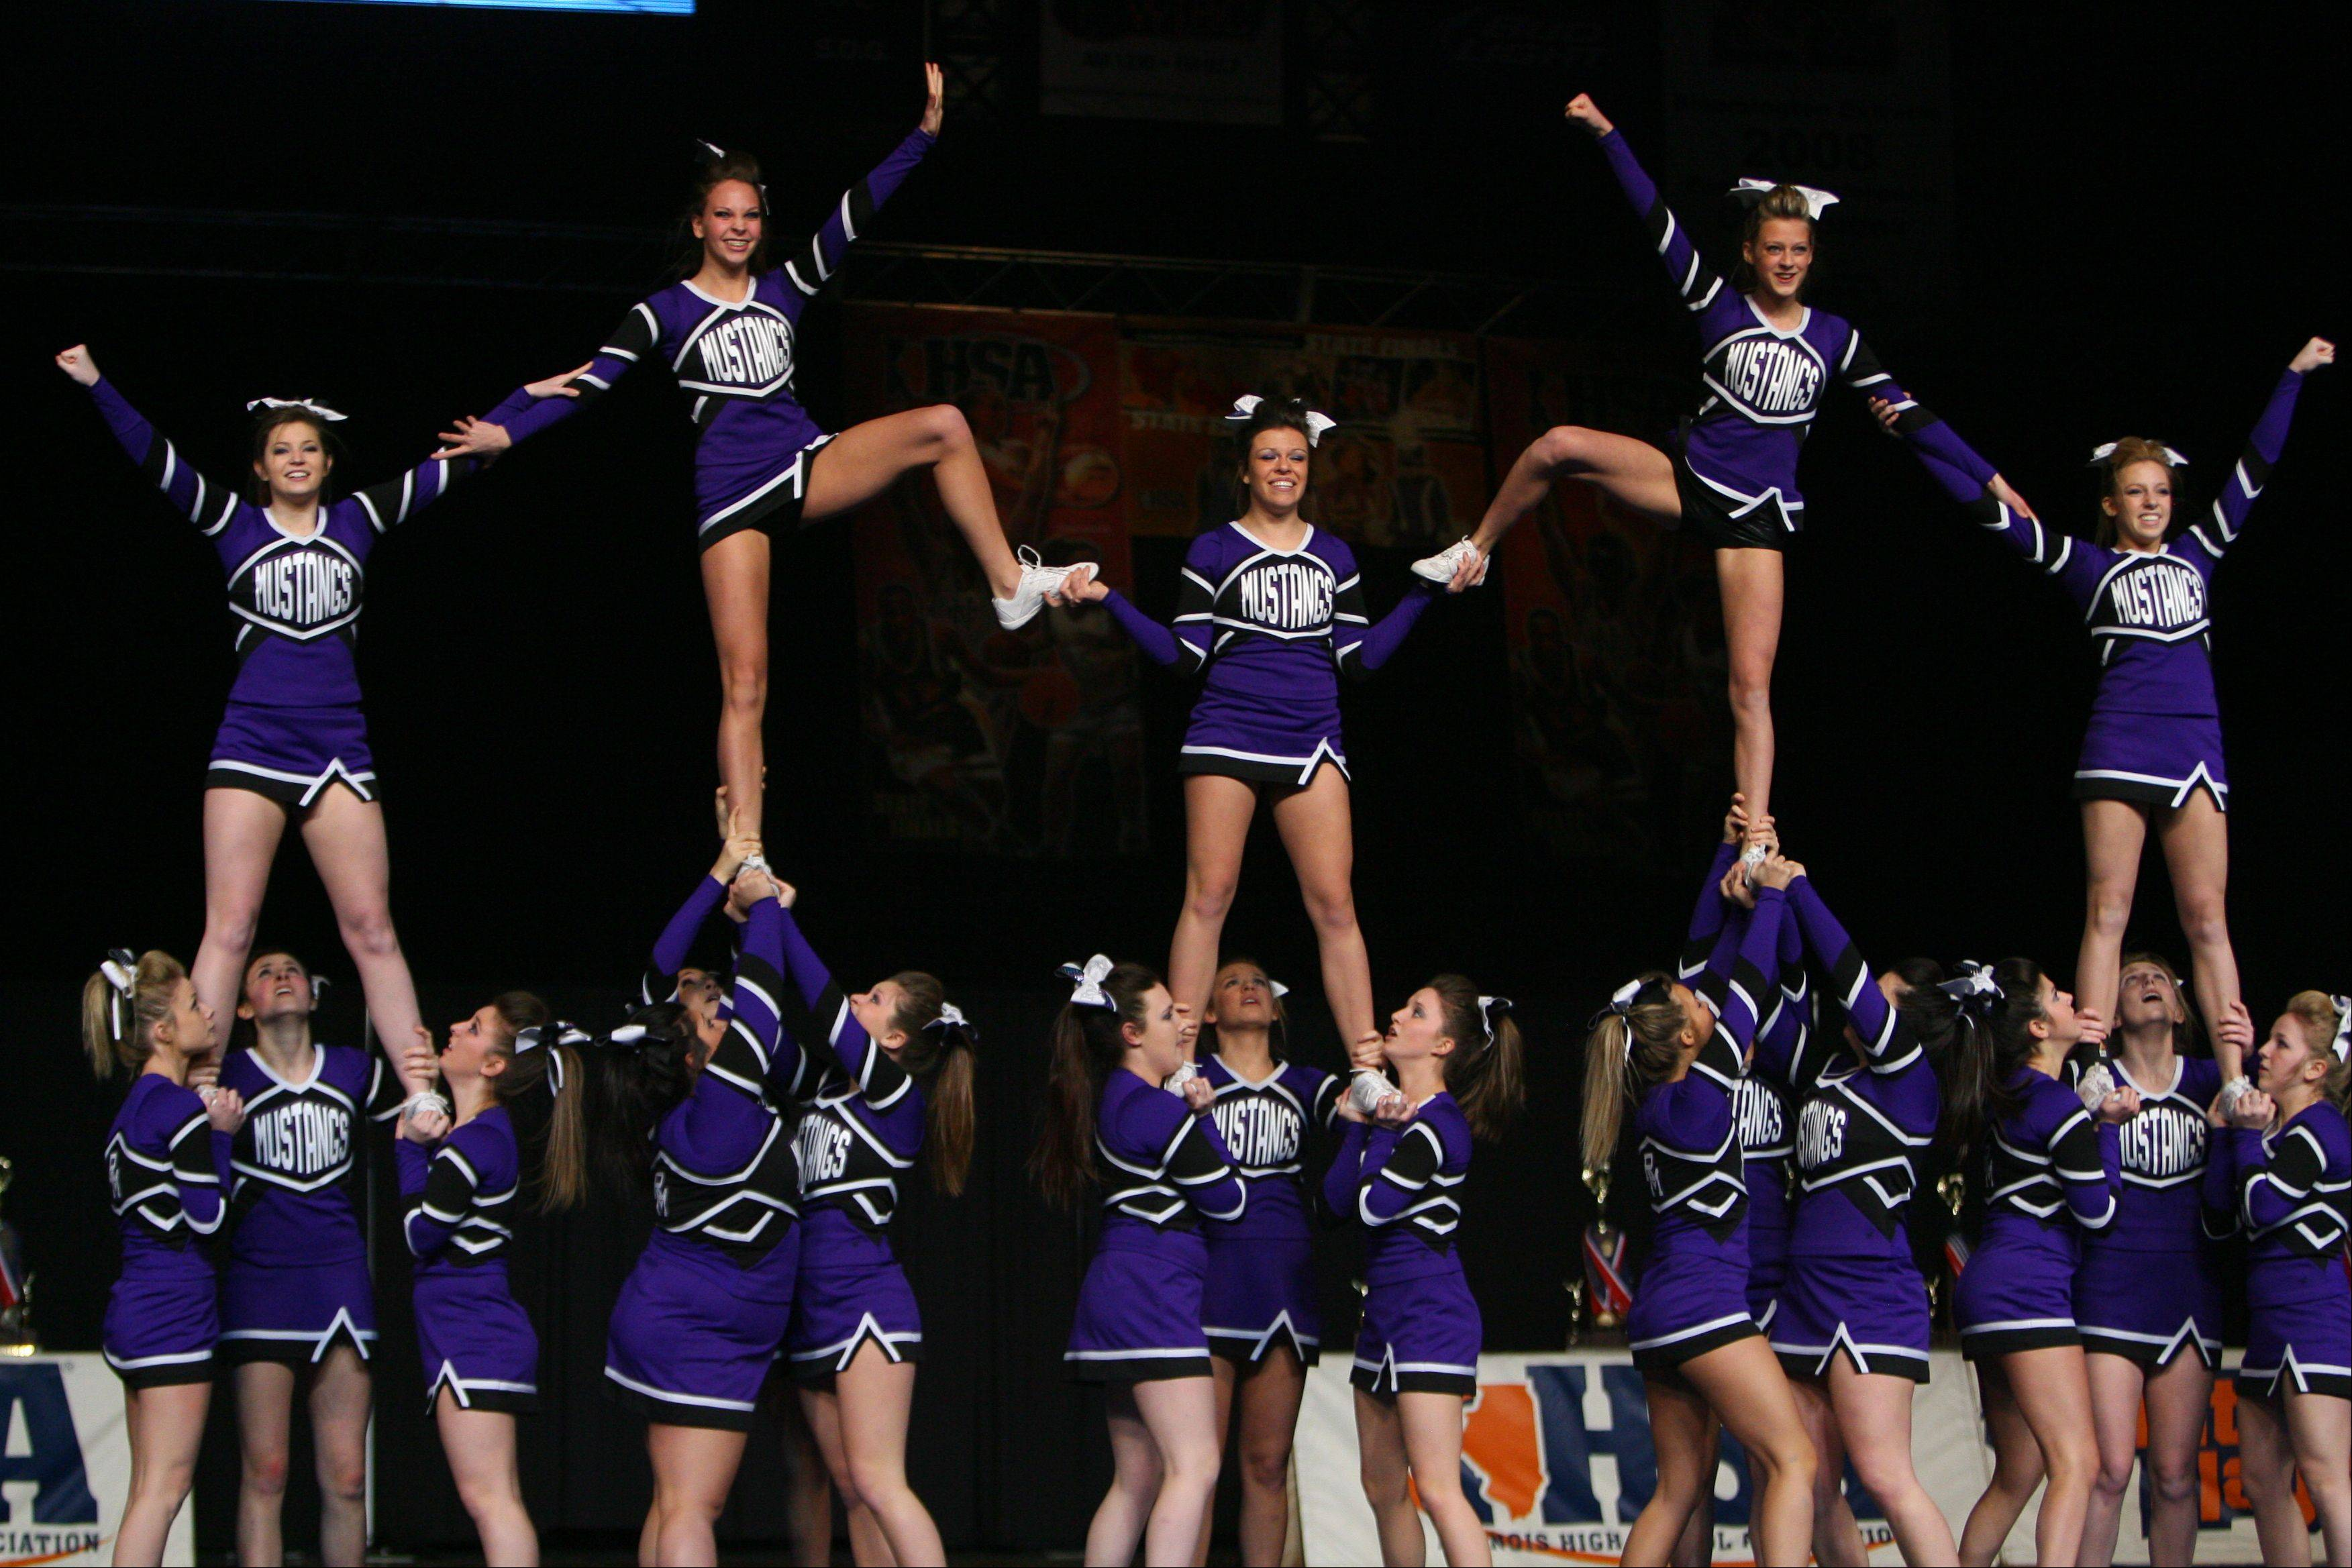 Rolling Meadows High School competes in the in the Competitive Cheerleading prelims on Friday at the U.S. Cellular Coliseum in Bloomington.